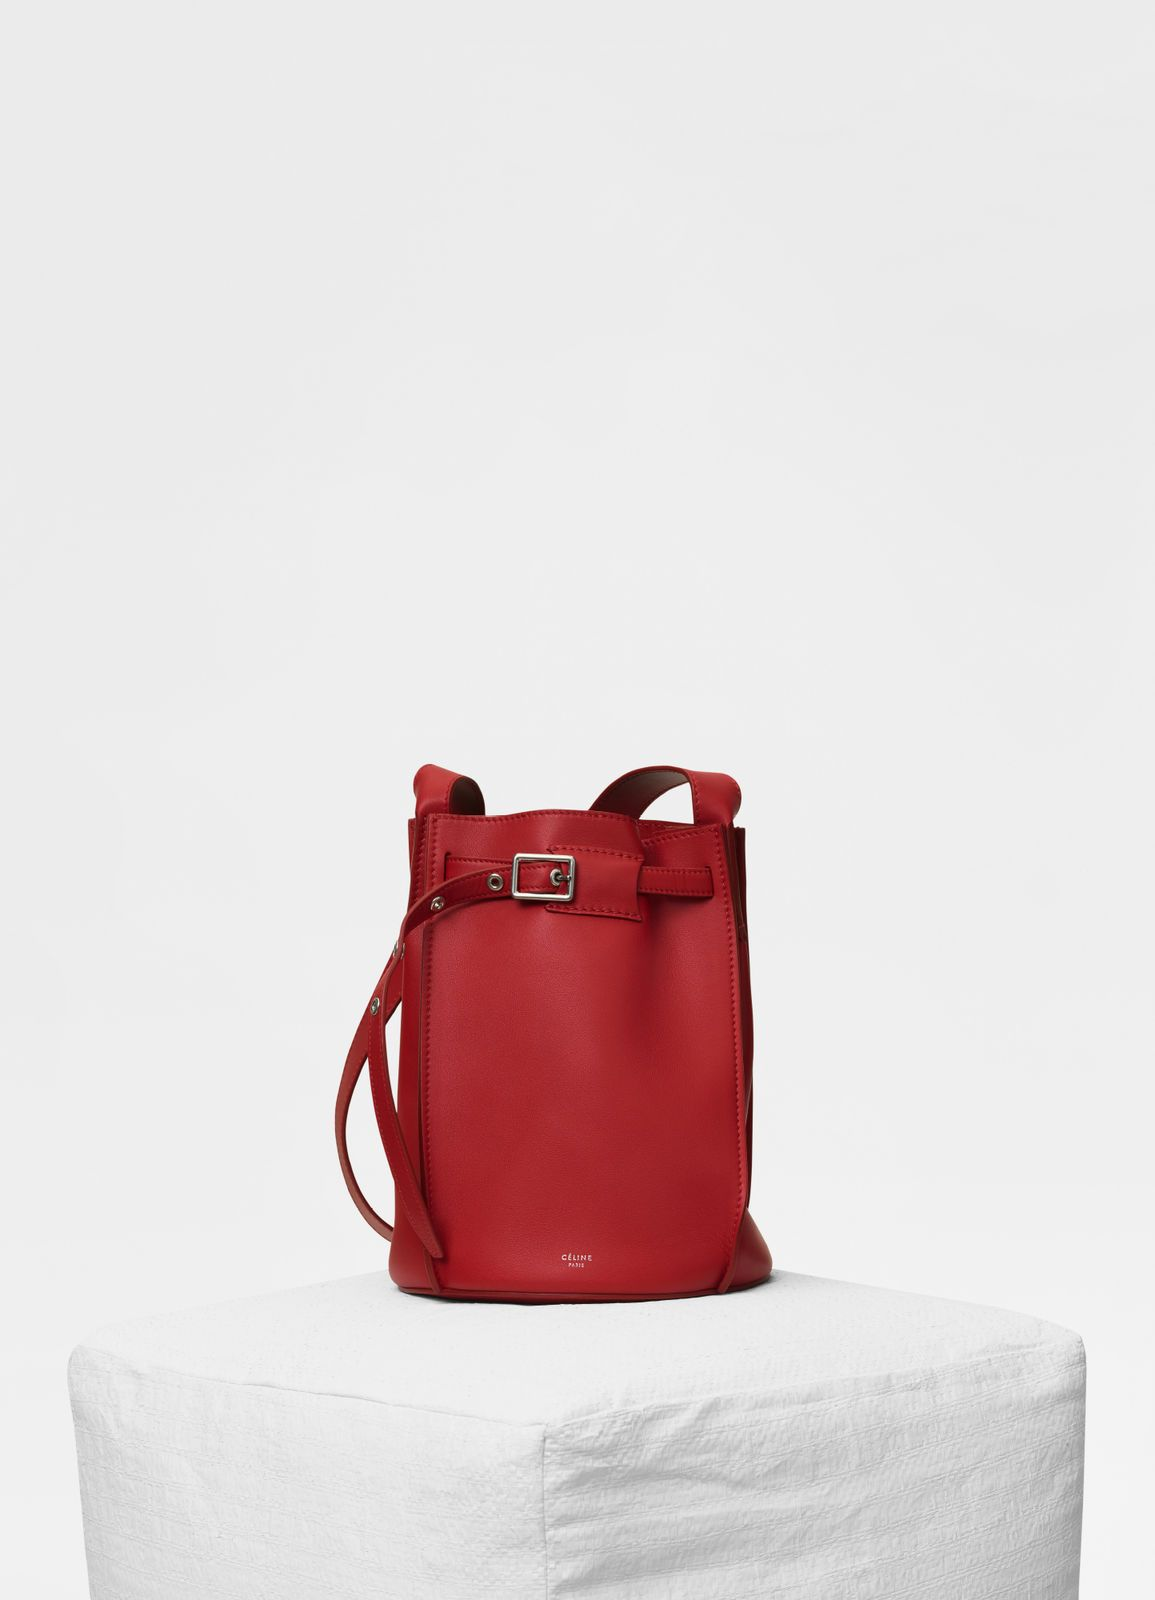 Céline - Big bag Bucket with long strap in smooth pop red calfskin ... 839e724c9adc8